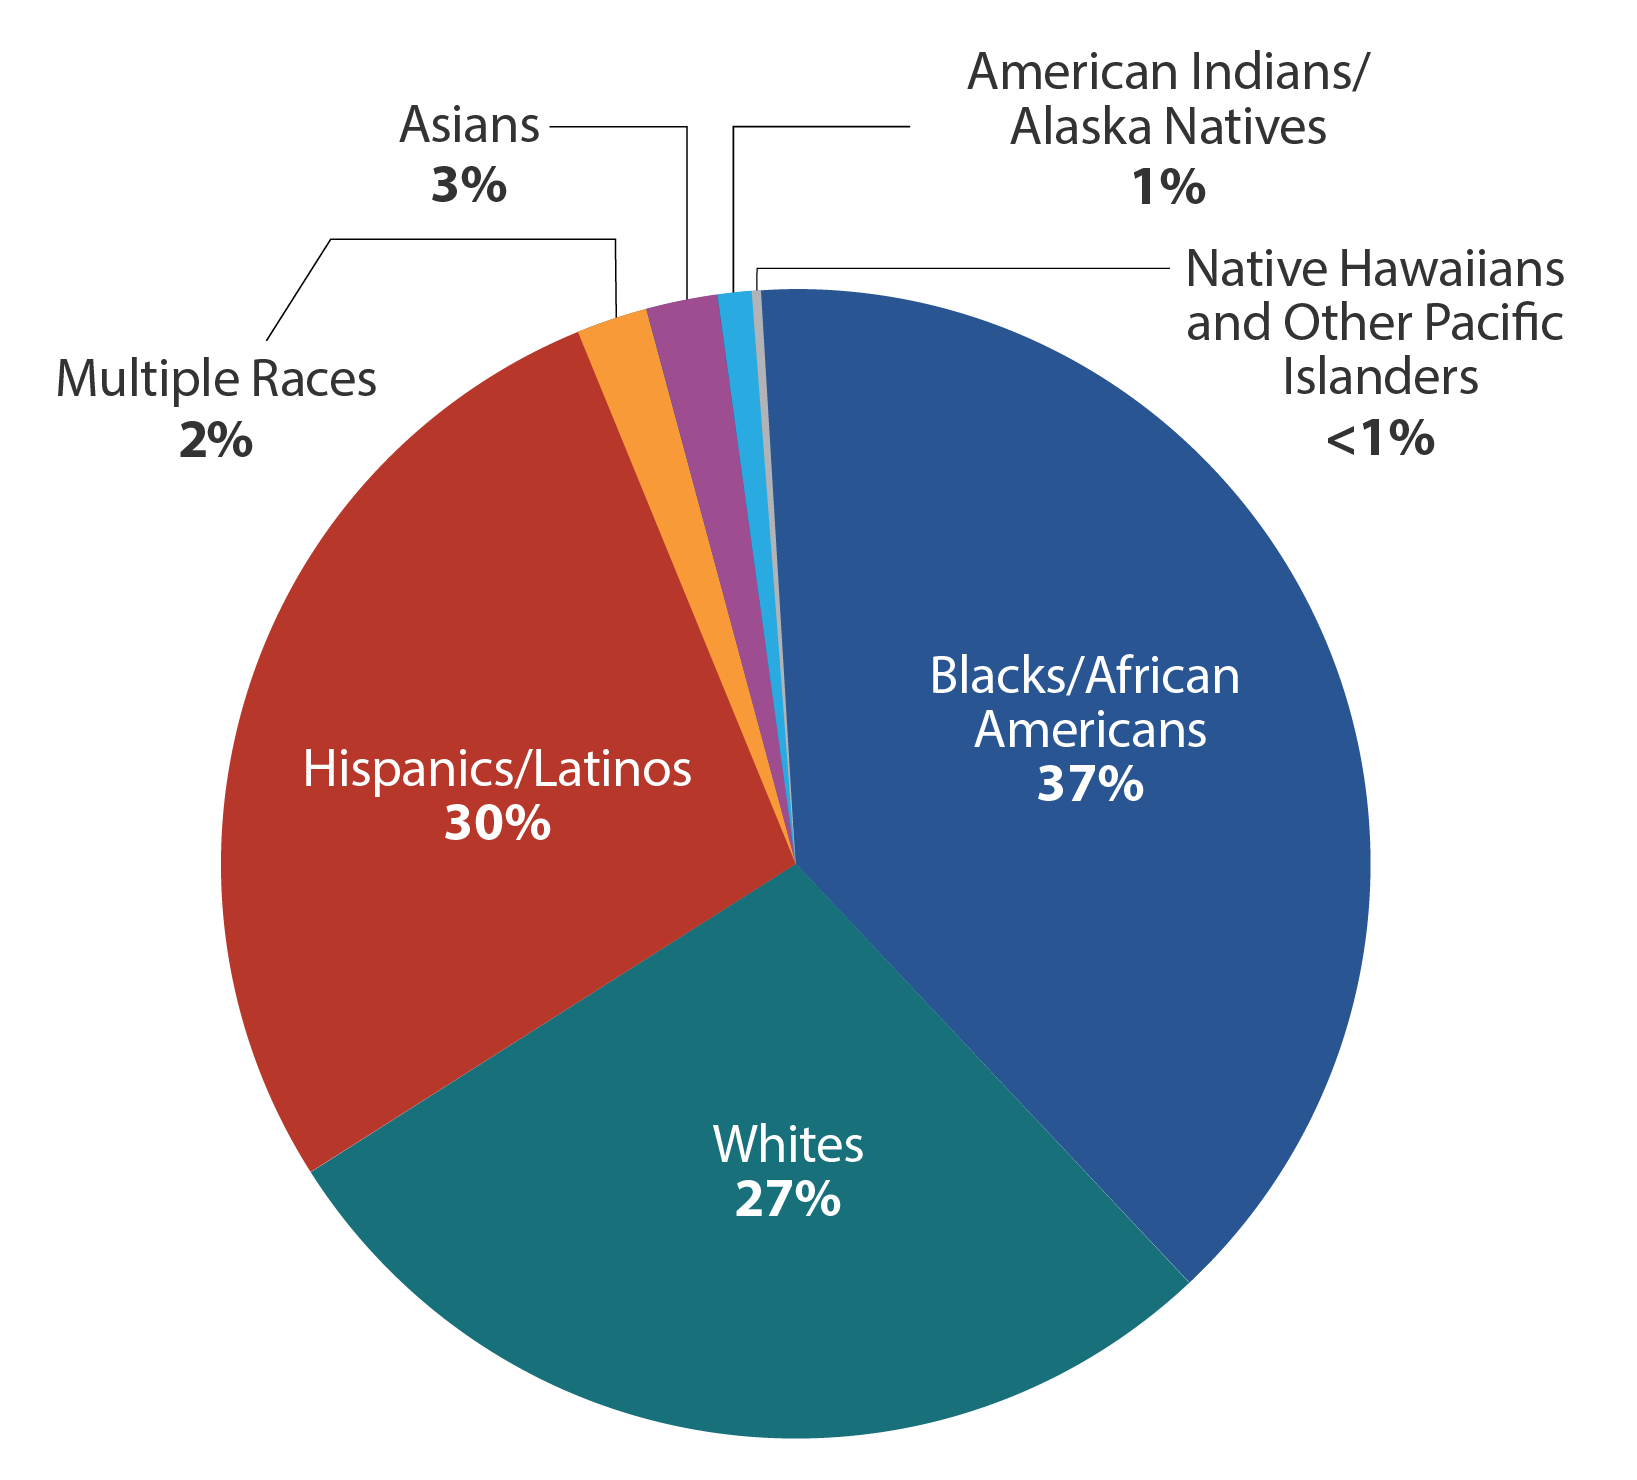 This pie chart shows HIV diagnoses among gay and bisexual men in the United States and dependent areas in 2018 by race. Black/African American gay and bisexual men made up 37% of new HIV diagnoses, Hispanic/Latino gay and bisexual men made up 30%, white gay and bisexual men made up 27%, Asian gay and bisexual men made up 3%, gay and bisexual men of multiple races made up 2%, American Indian/Alaska Native gay and bisexual men made up 1% and Native Hawaiian and Other Pacific Islander gay and bisexual men made up less than 1% of new HIV diagnoses.